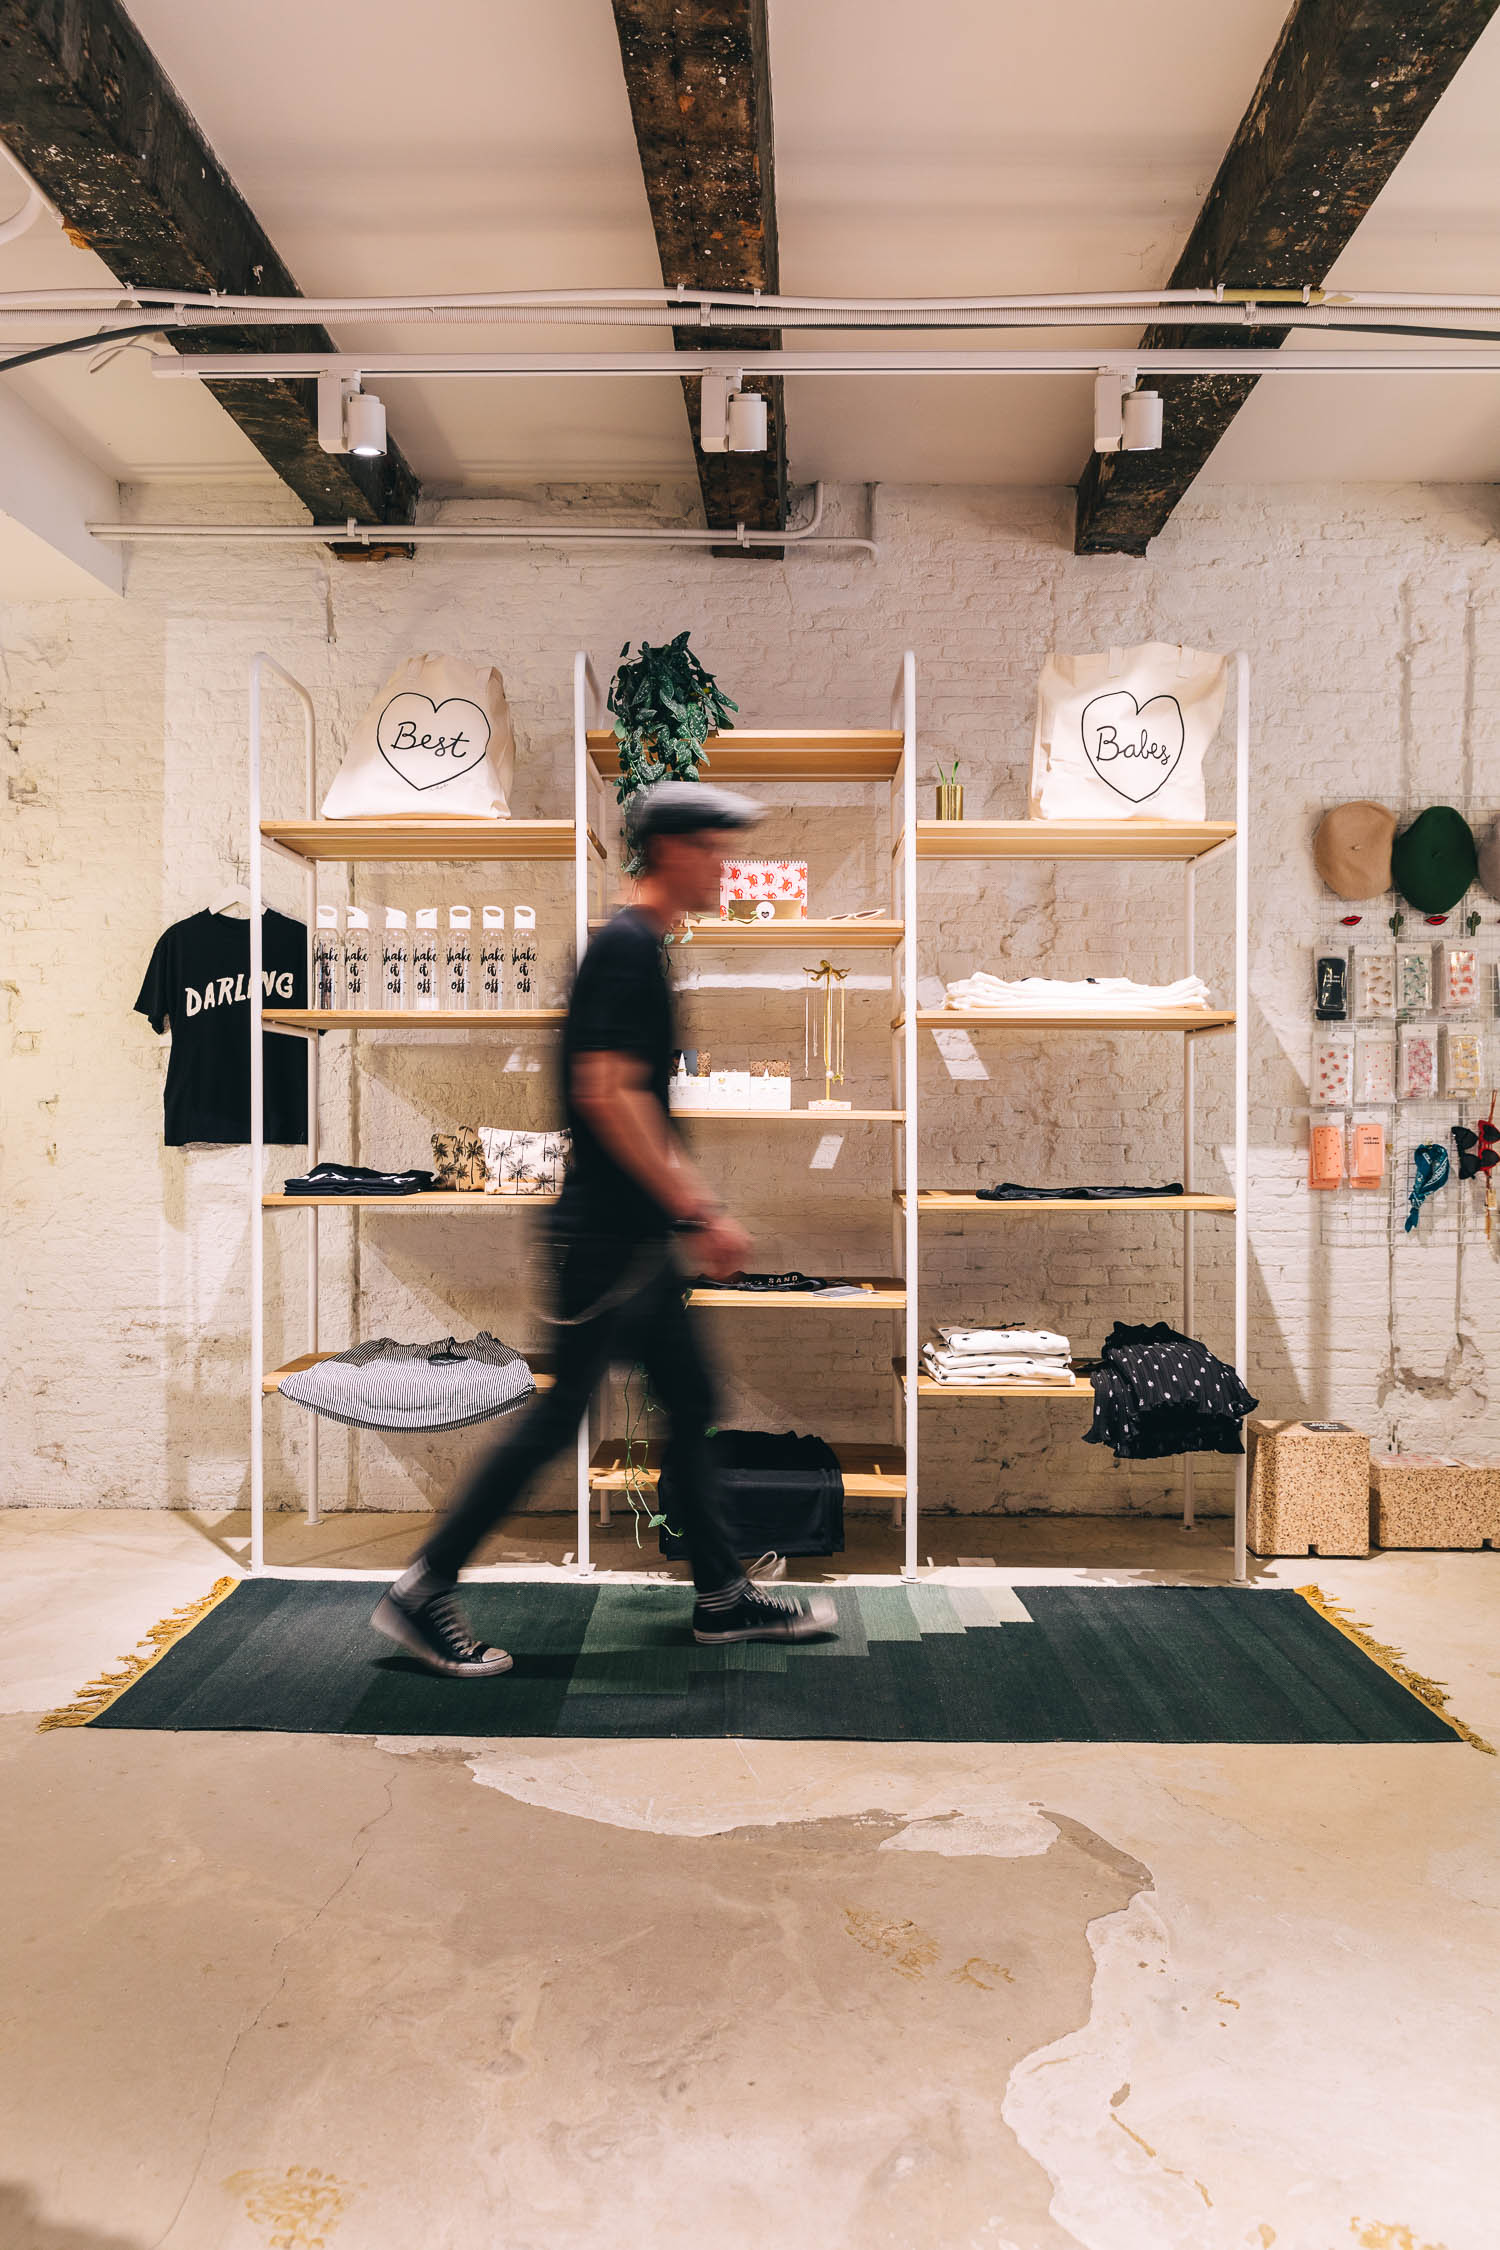 Catwalk_Junkie_Interior_store_Amsterdam_photography_by_On_a_hazy_morning003.jpg